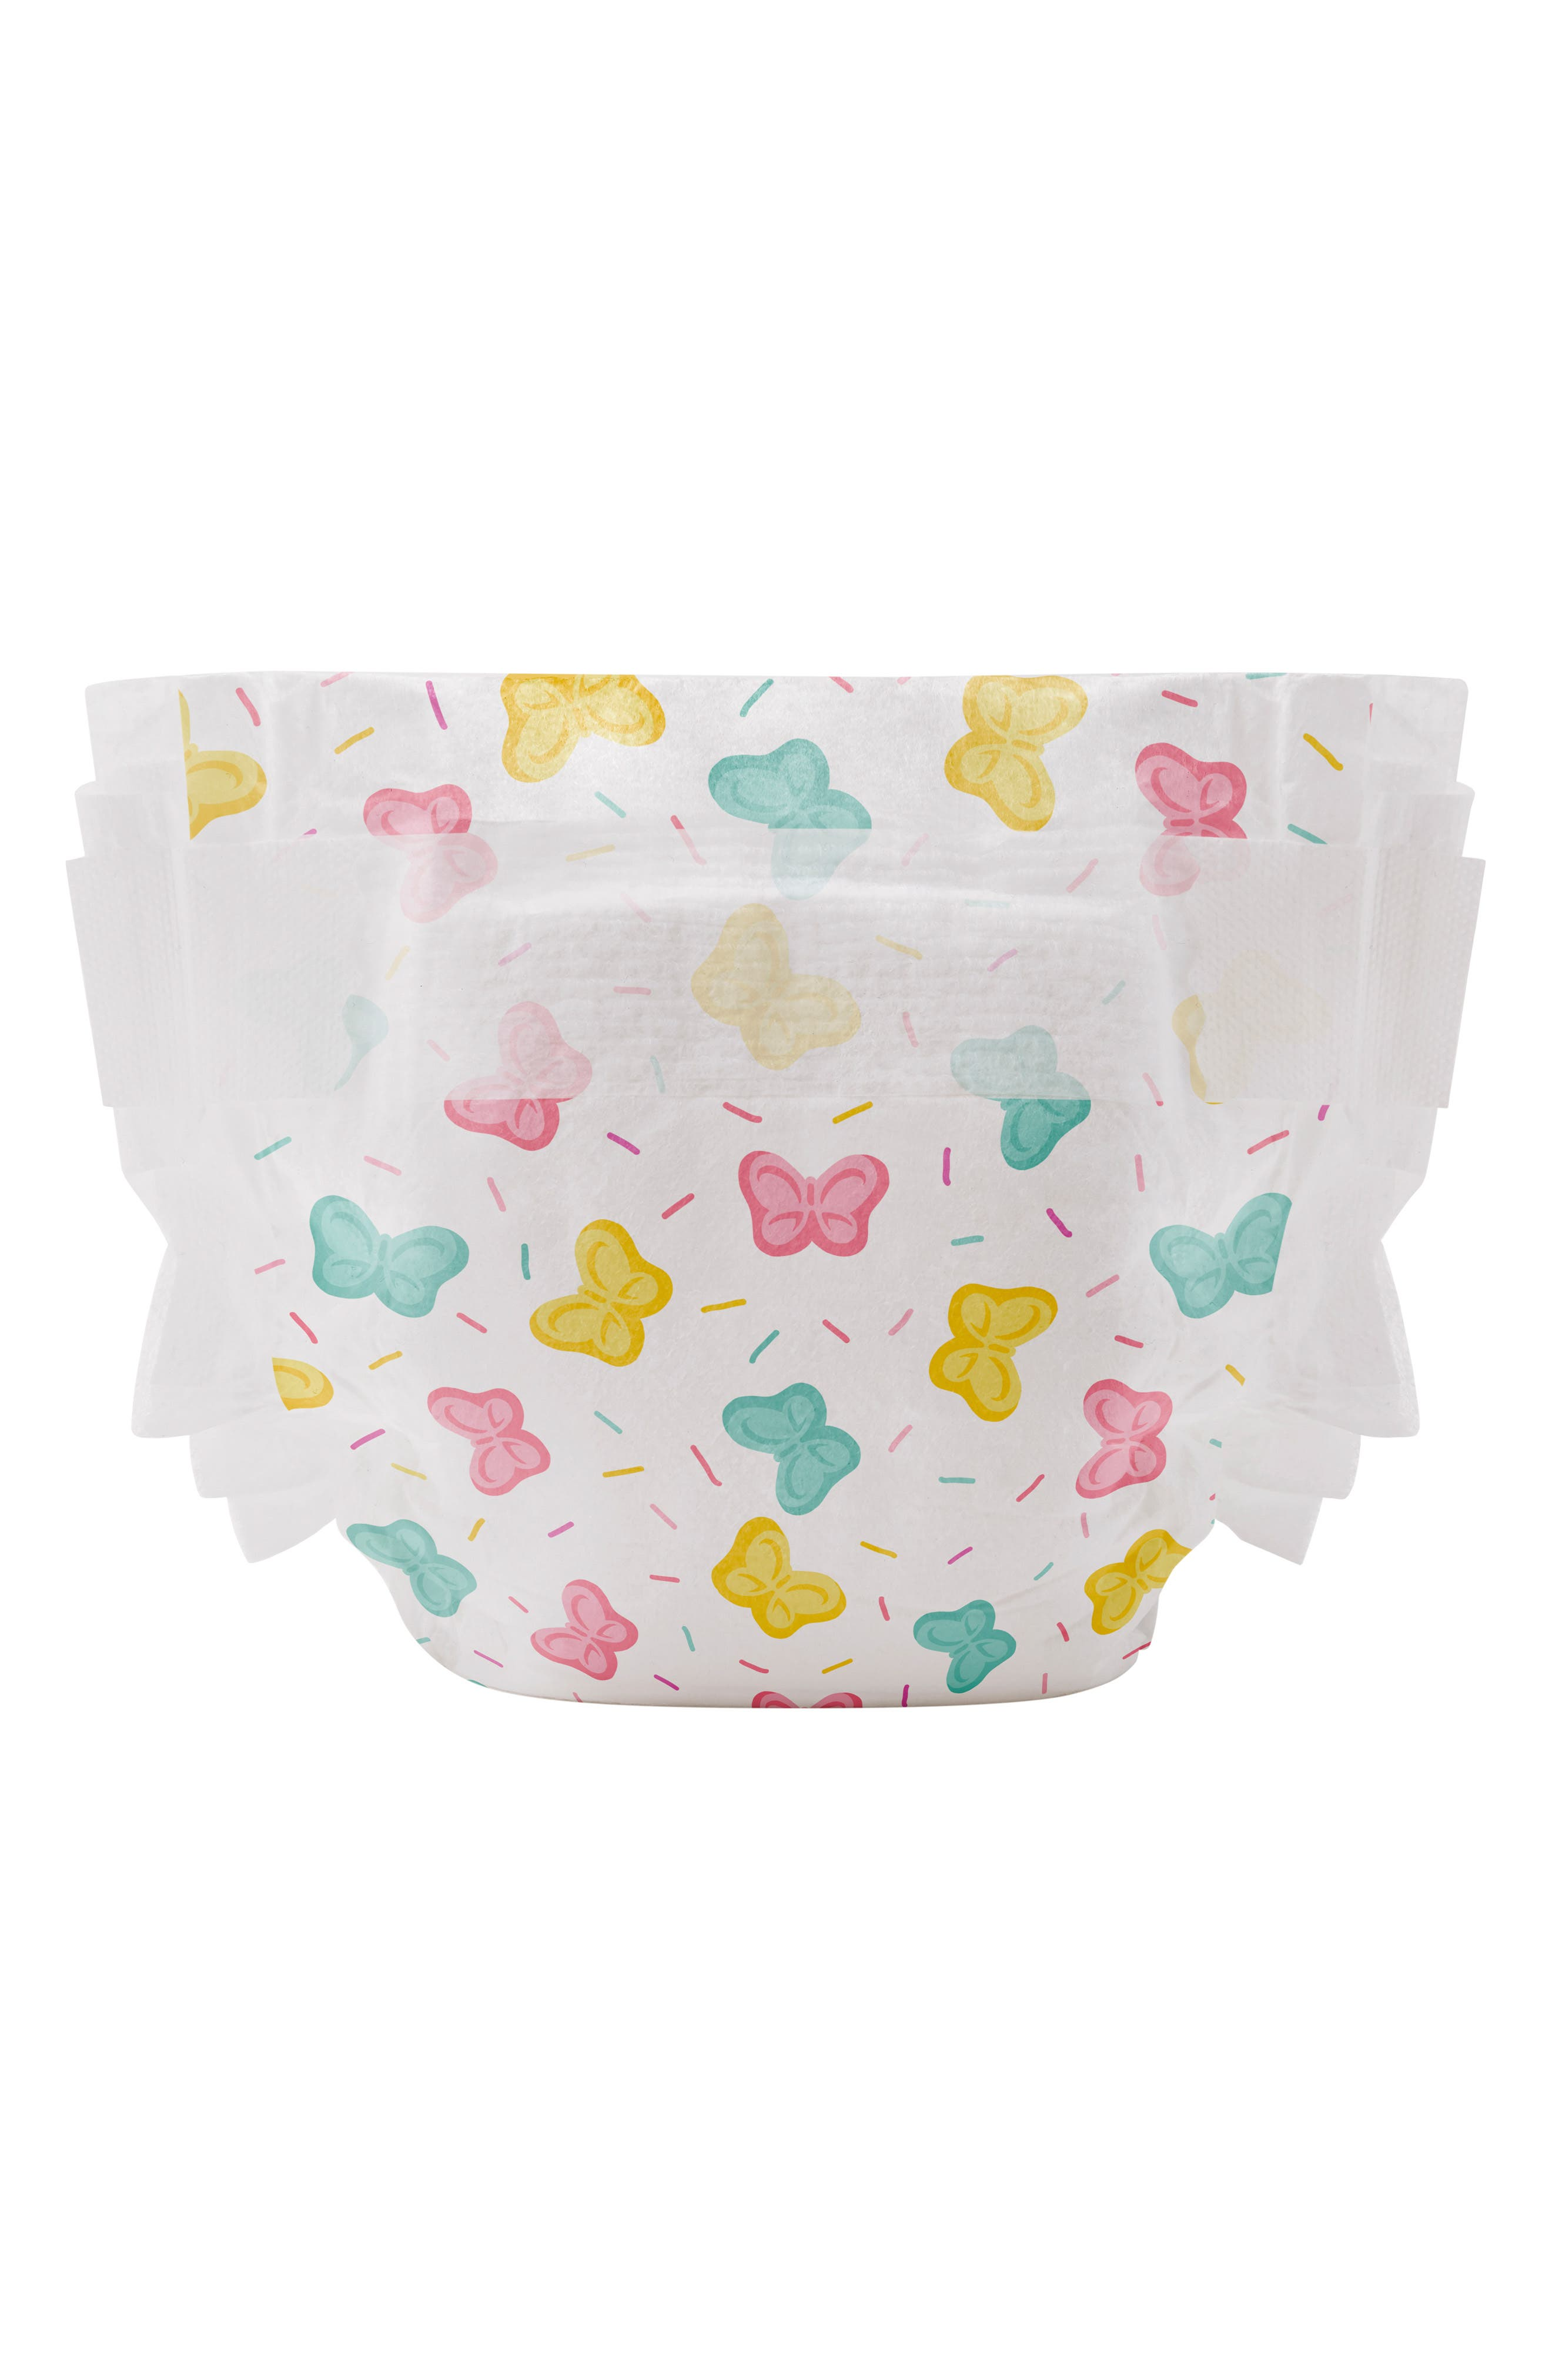 x Sugarfina Sweet Thing Diapers,                             Main thumbnail 1, color,                             SWEET THING